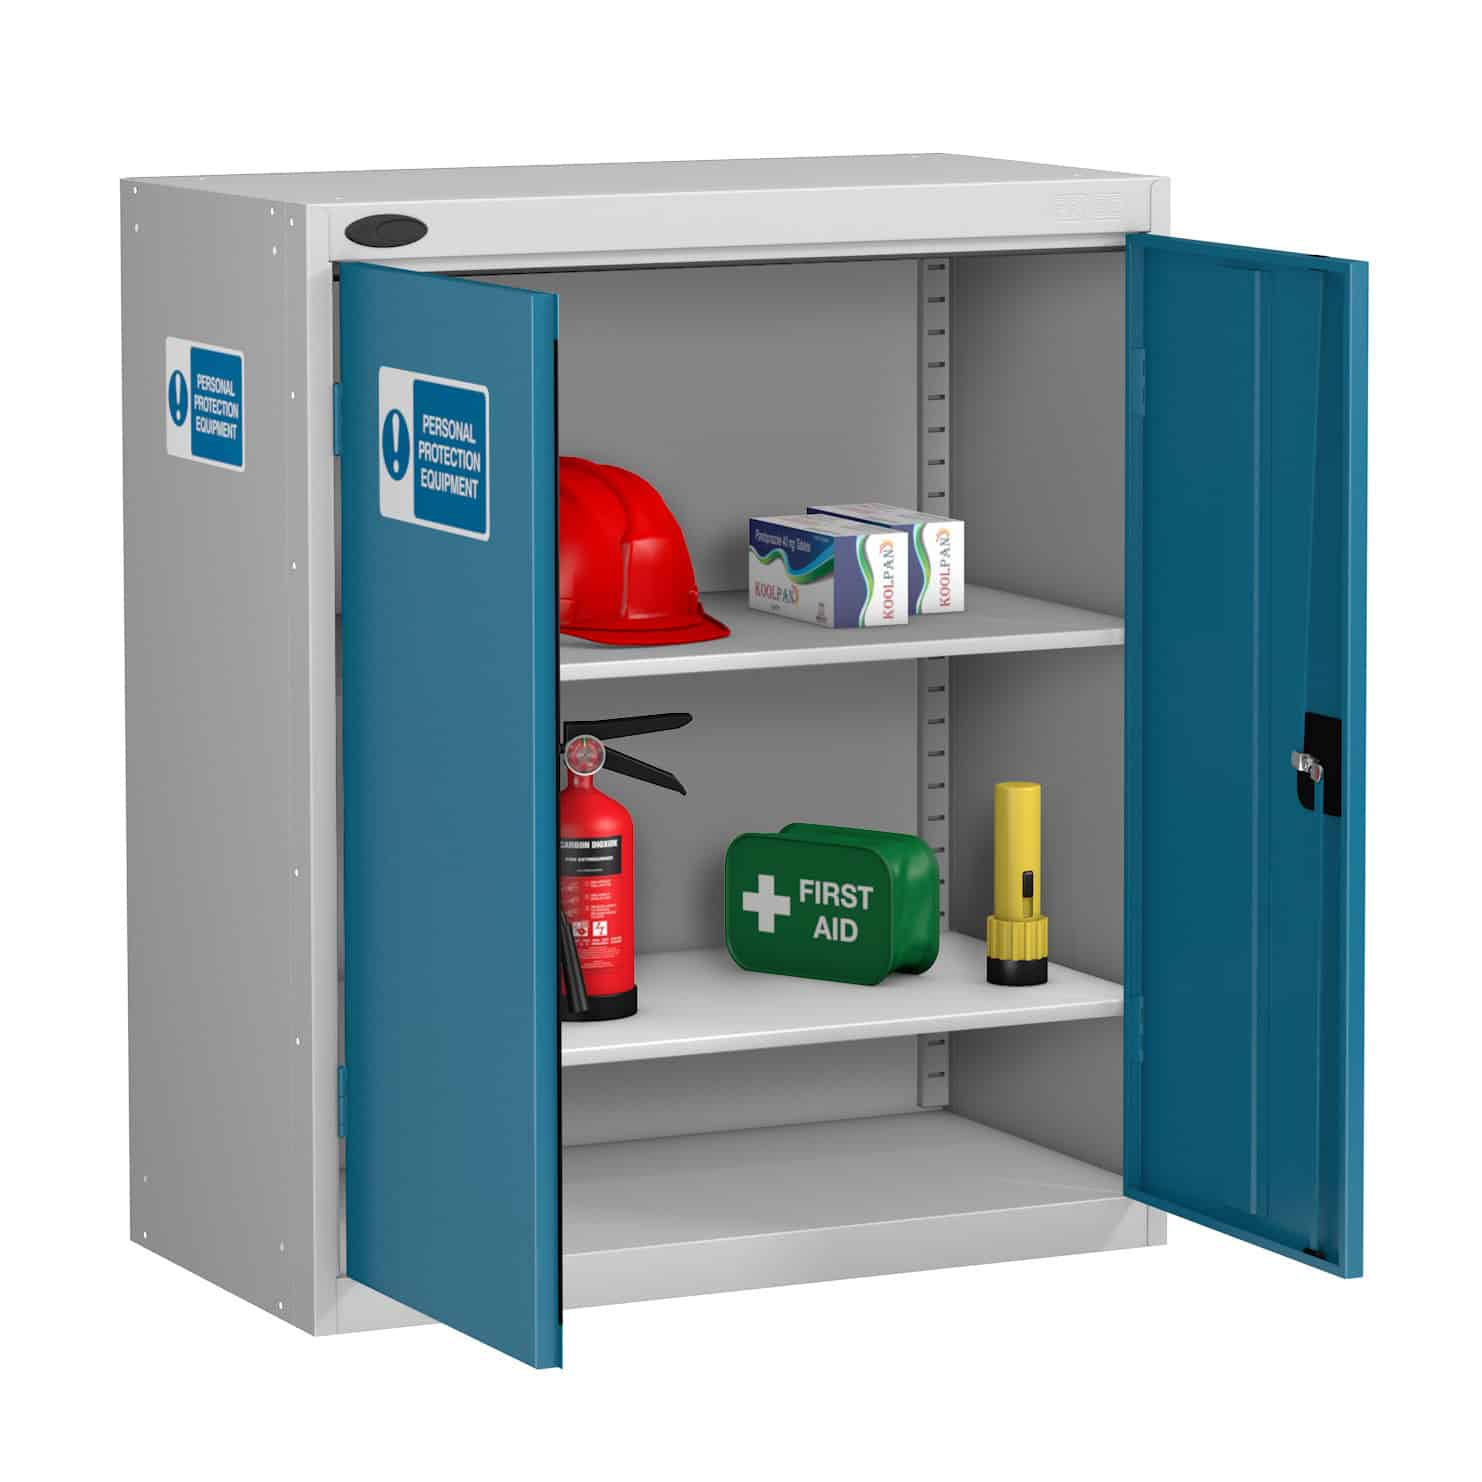 Probe Low PPE Cabinets